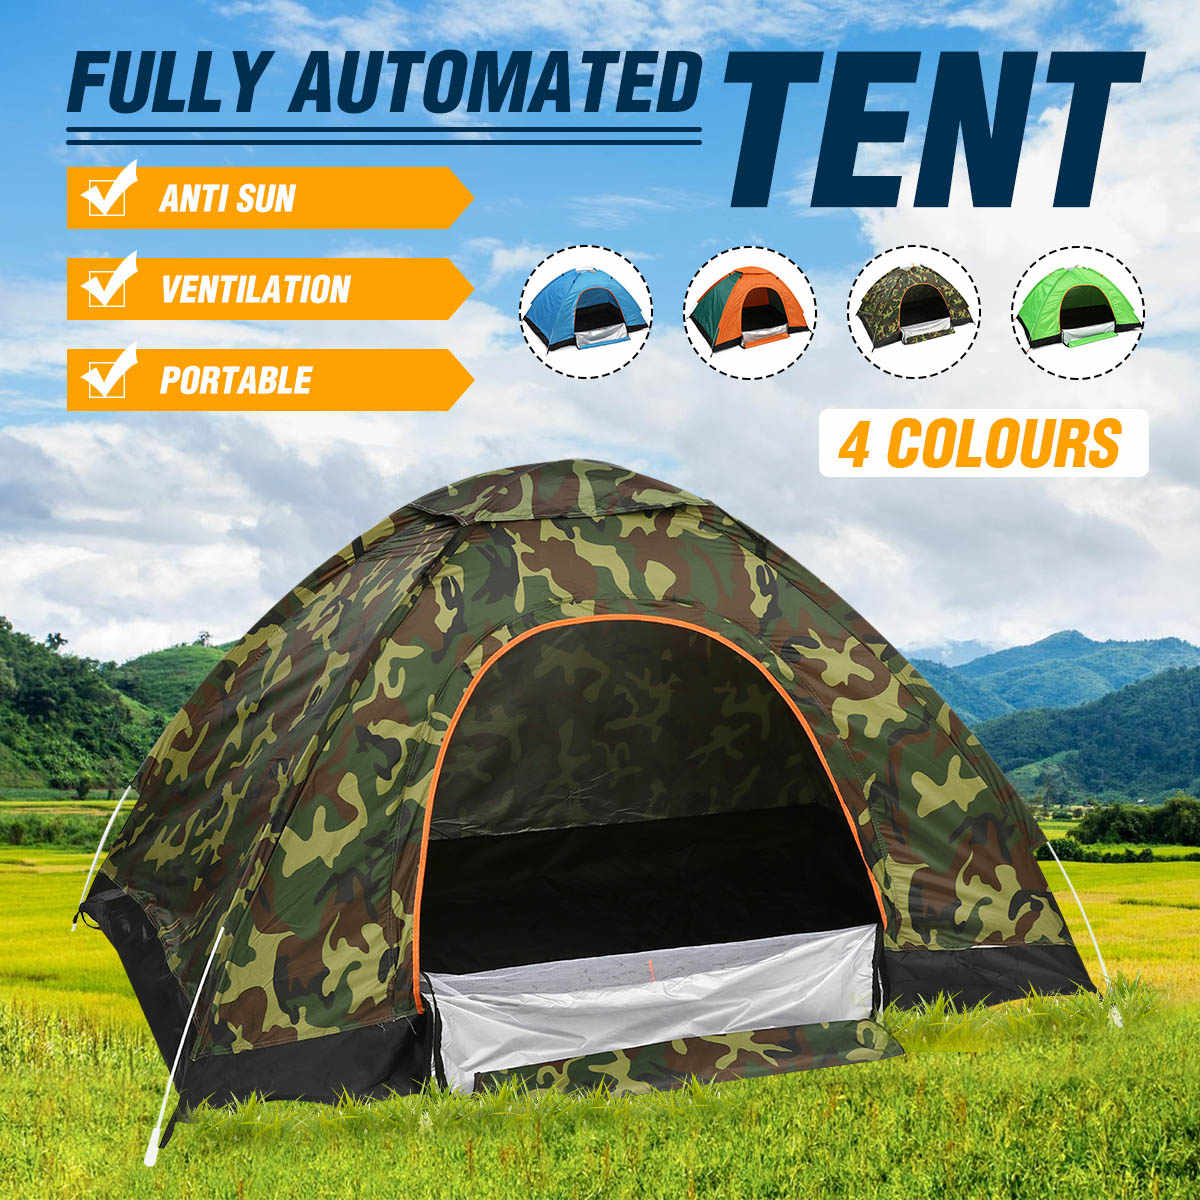 Outdoor Tents Protable Camping Beach Tent Waterproof for Sun Shelter,Travelling,Hiking Large Space / Green / Orange / Camouflage